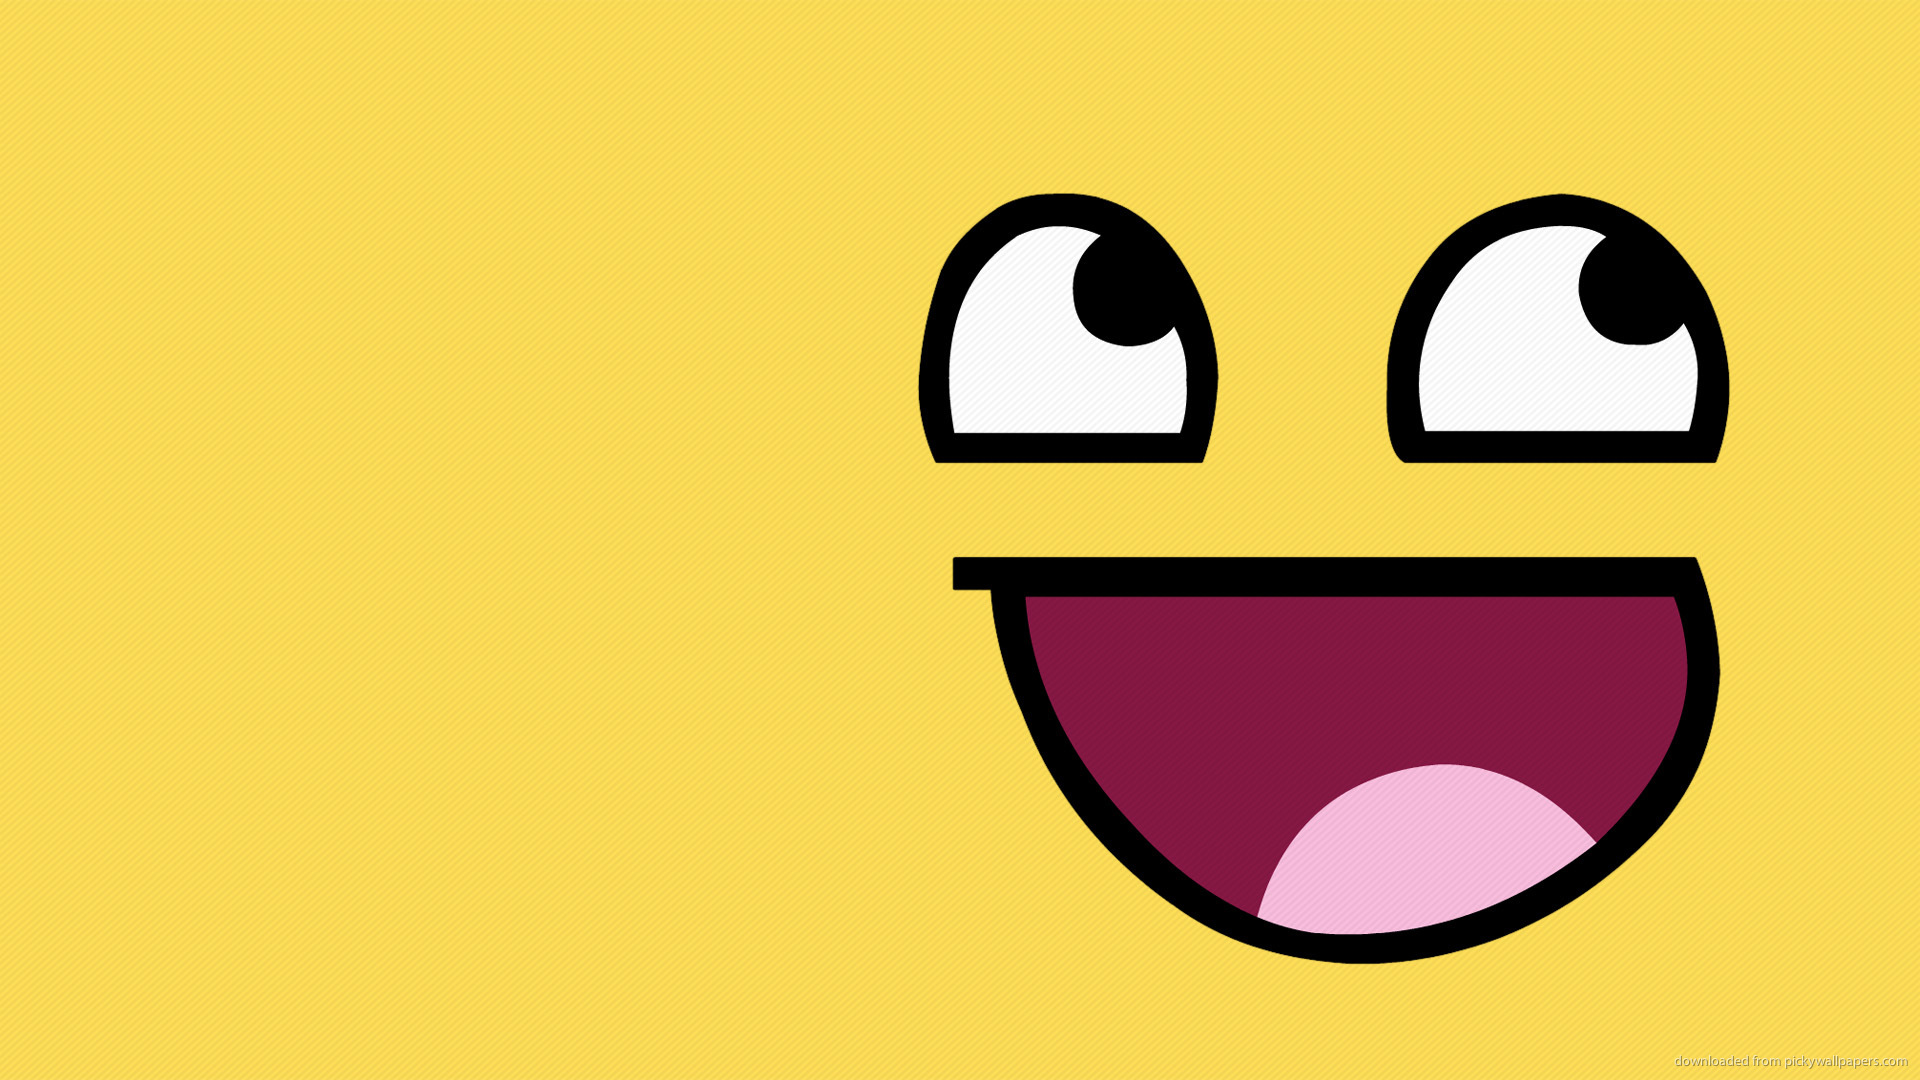 memes wallpaper giant smiley awesome miscellaneous 1920x1080